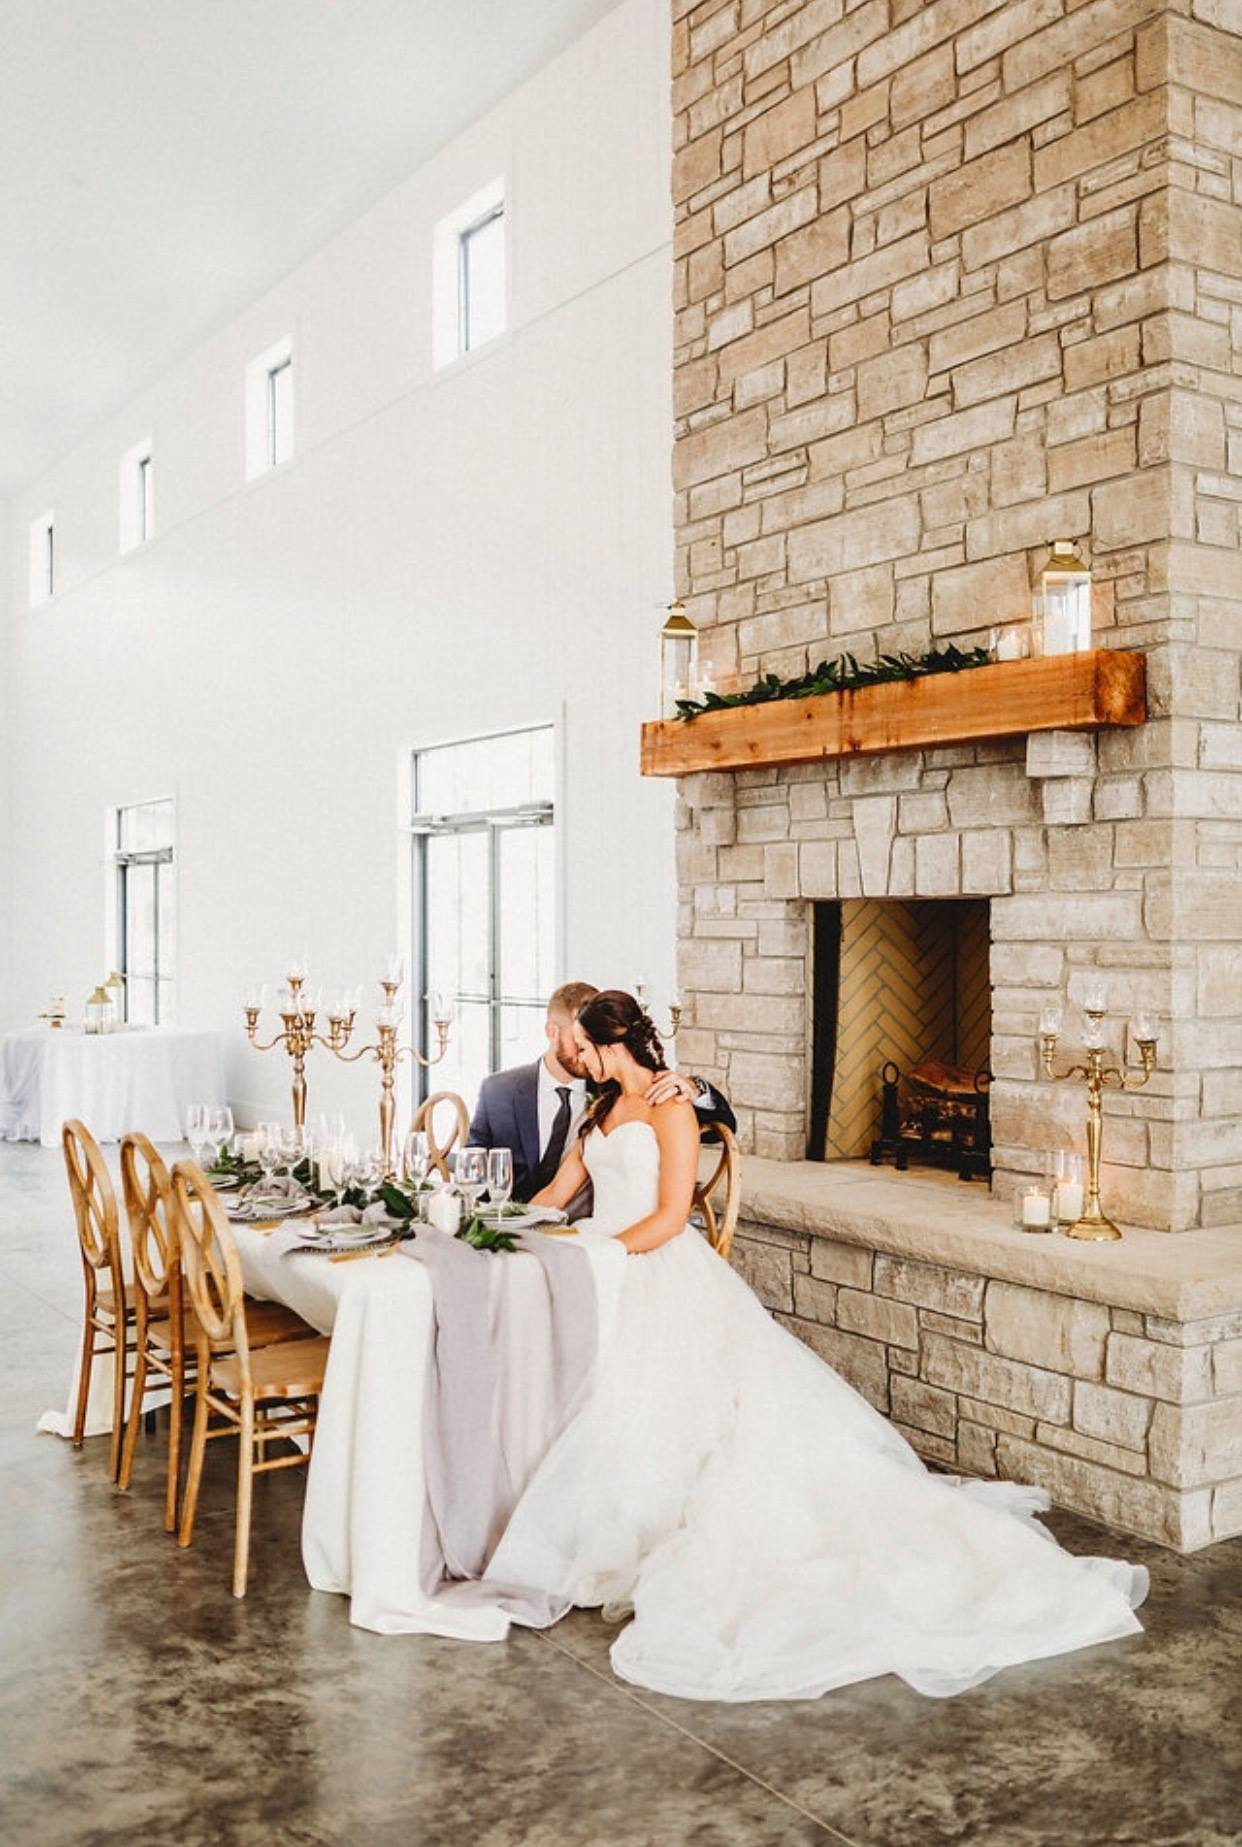 Modern Barn Weddings - Like a page from a fairy tale, our brand new barn chapel is both whimsical and functional. The towering 20 foot shiplap walls soar to the giant farmhouse chandeliers. An indoor/ outdoor stone fireplace will be ready to keep your guests warm as they converse or play corn hole under our cedar pergola. With a commercial kitchen, bar service and space for 250+/-, this venue is perfectly crafted to meet your needs.